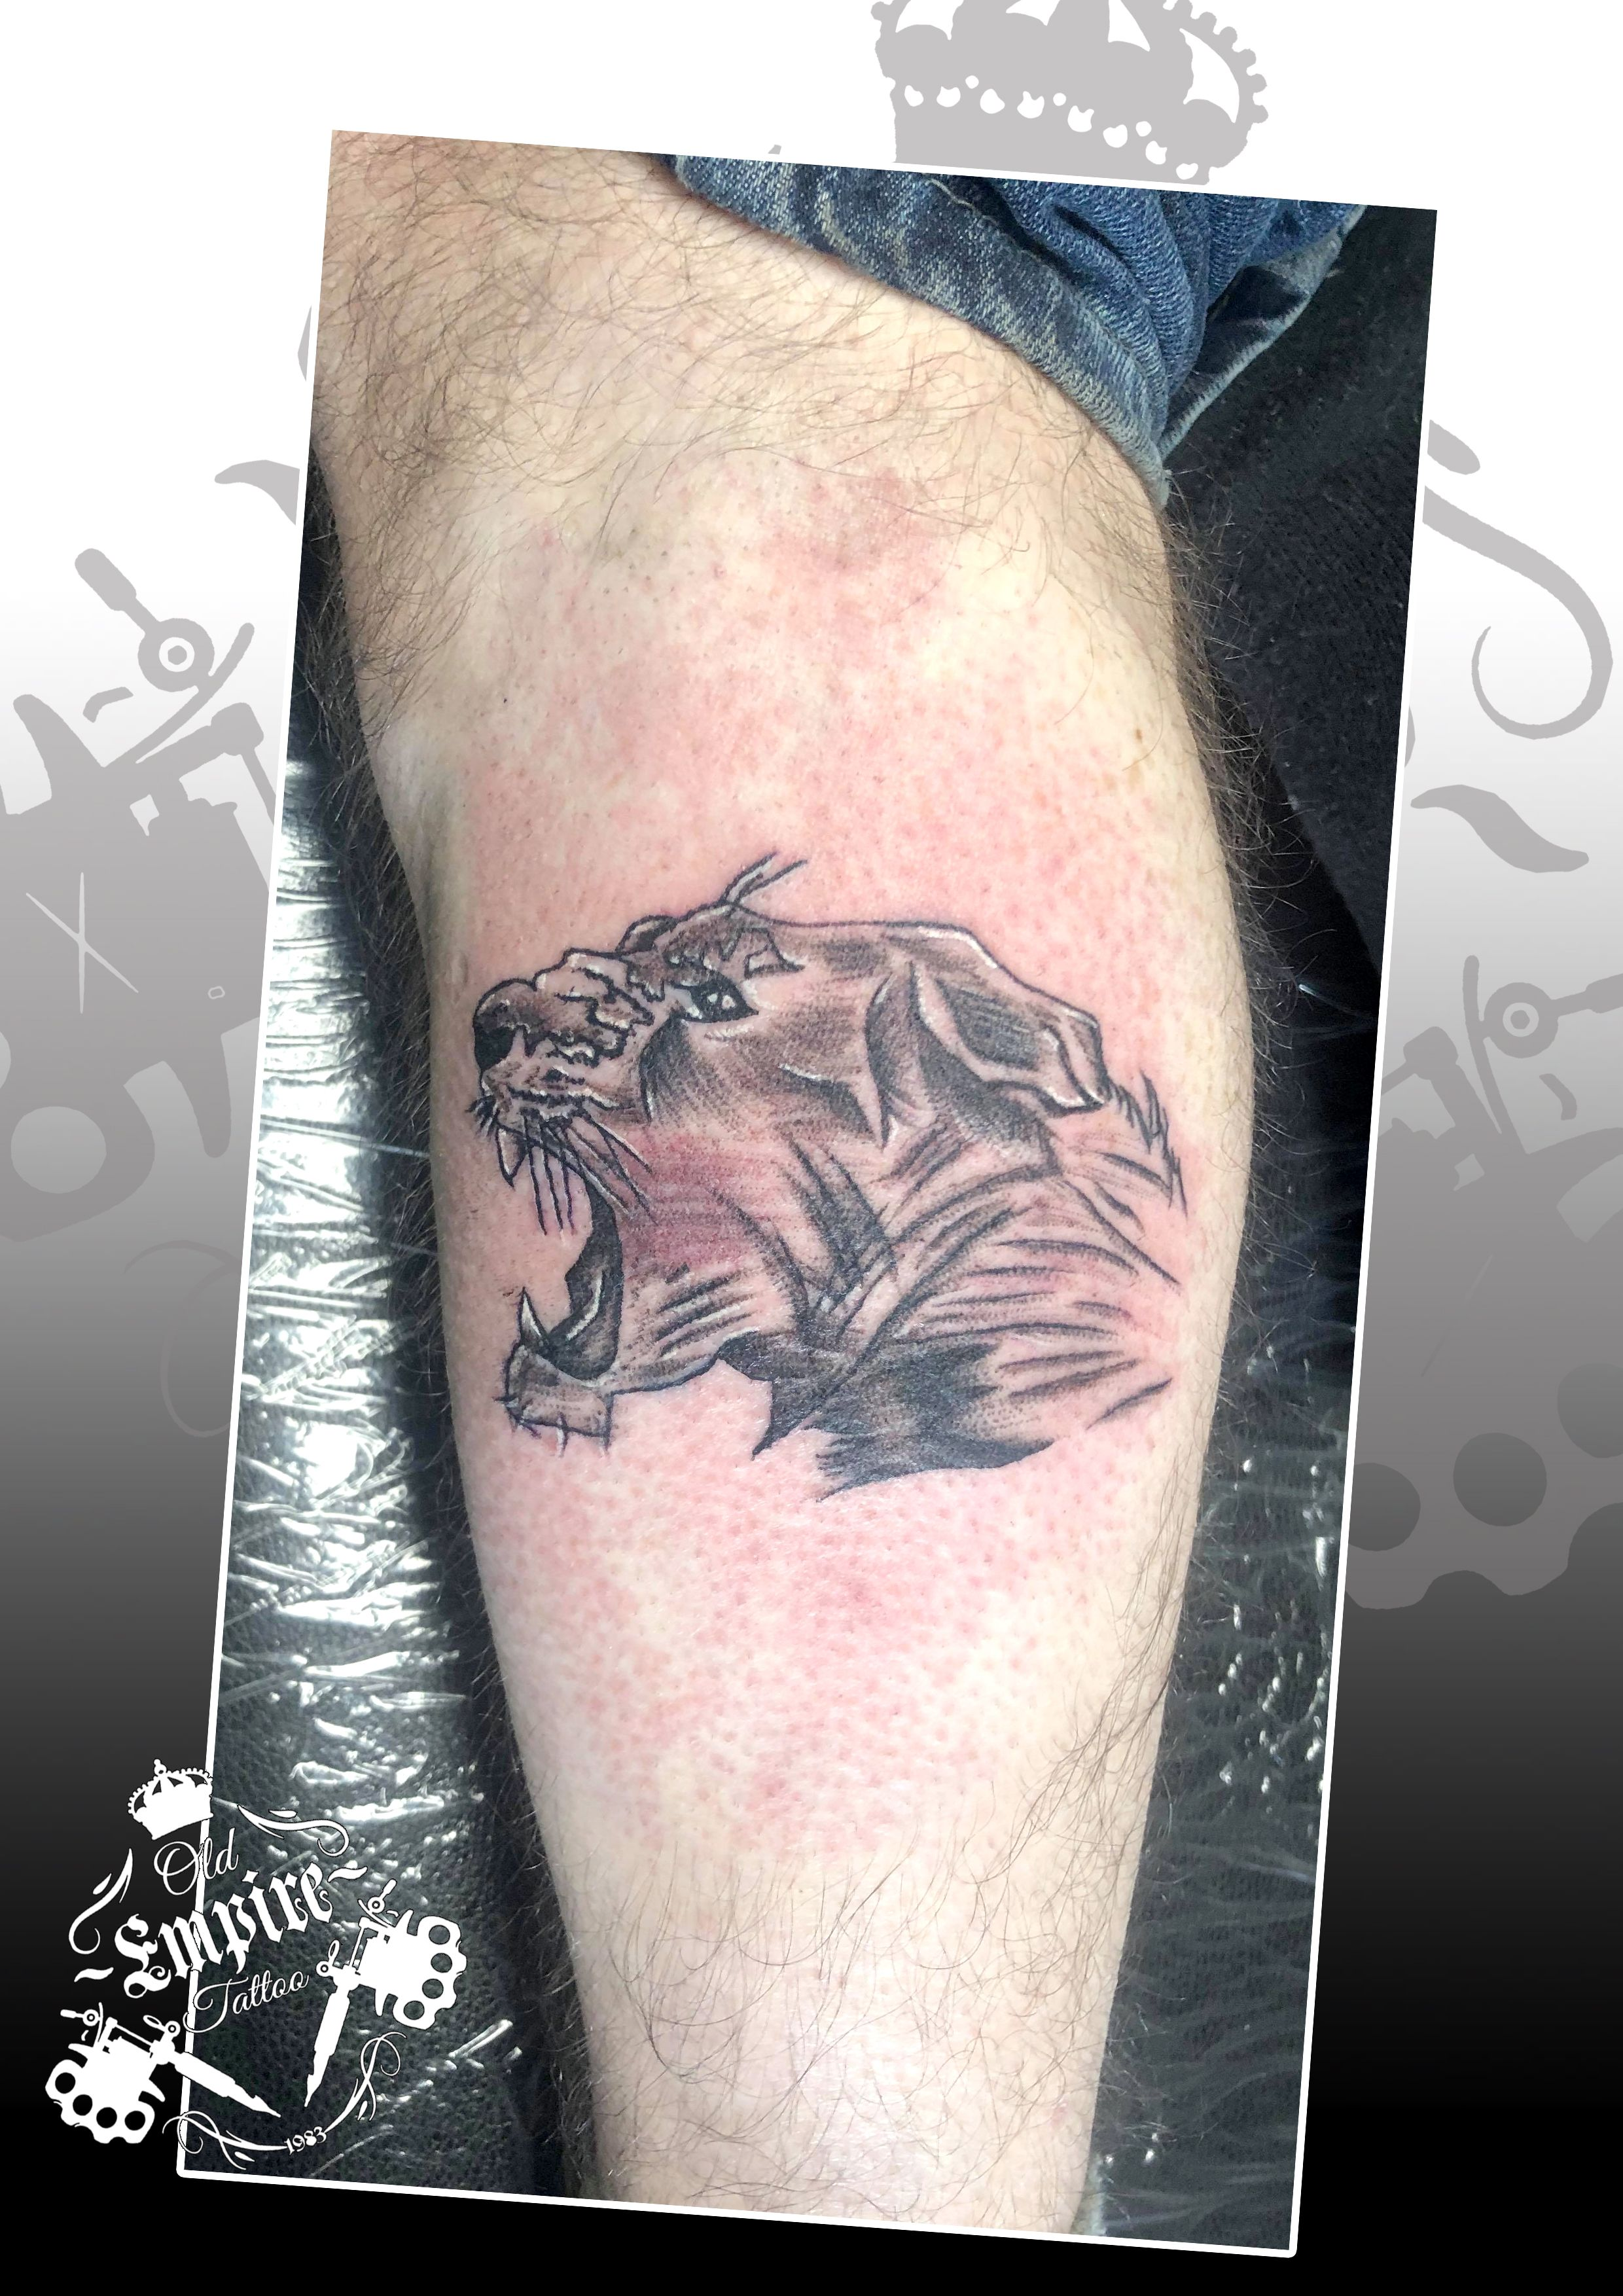 A cool #LionTattoo #SketchStyle done in #BlackAndGrey great placement and great client 👍  #Lion #WildLifeTattoo #LegTattoo #LowerLegTatt #InkedGuys @OldEmpireTattoo